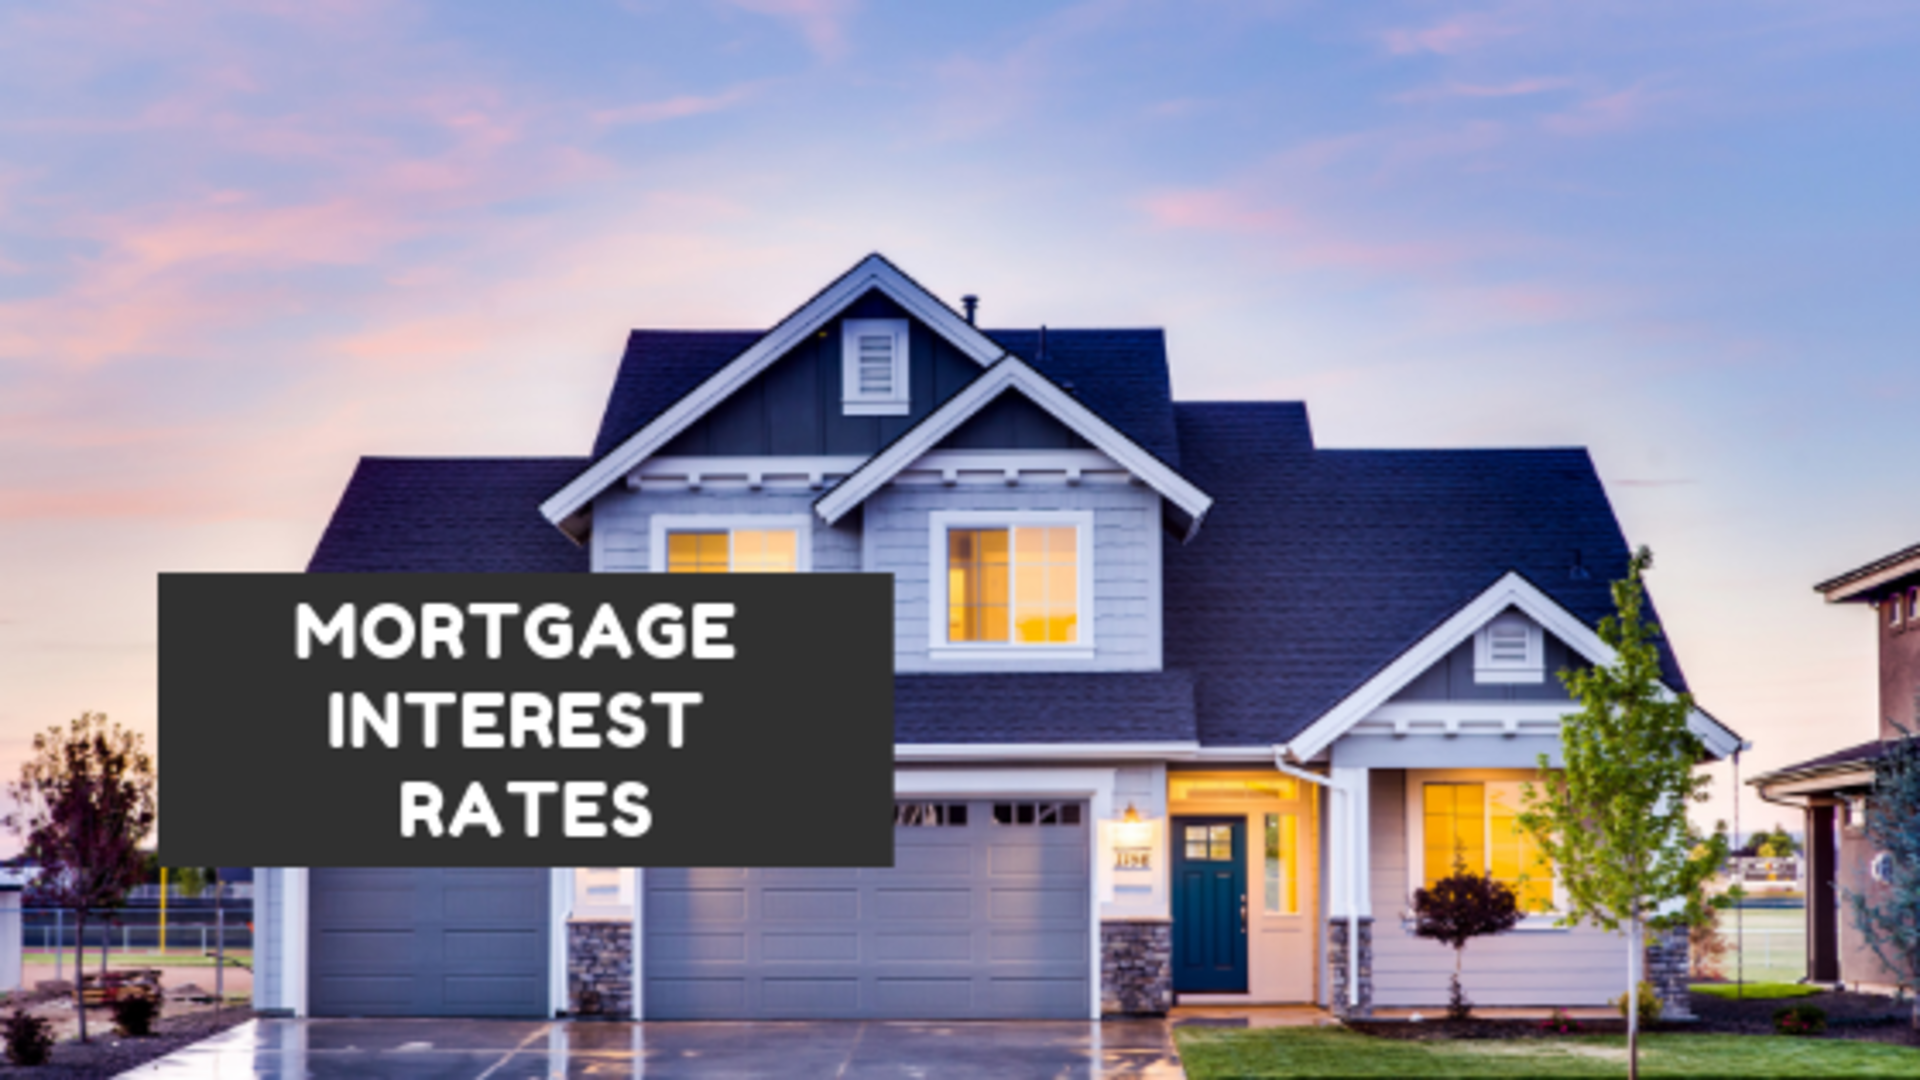 Mortgage Interest Rates On the Rise